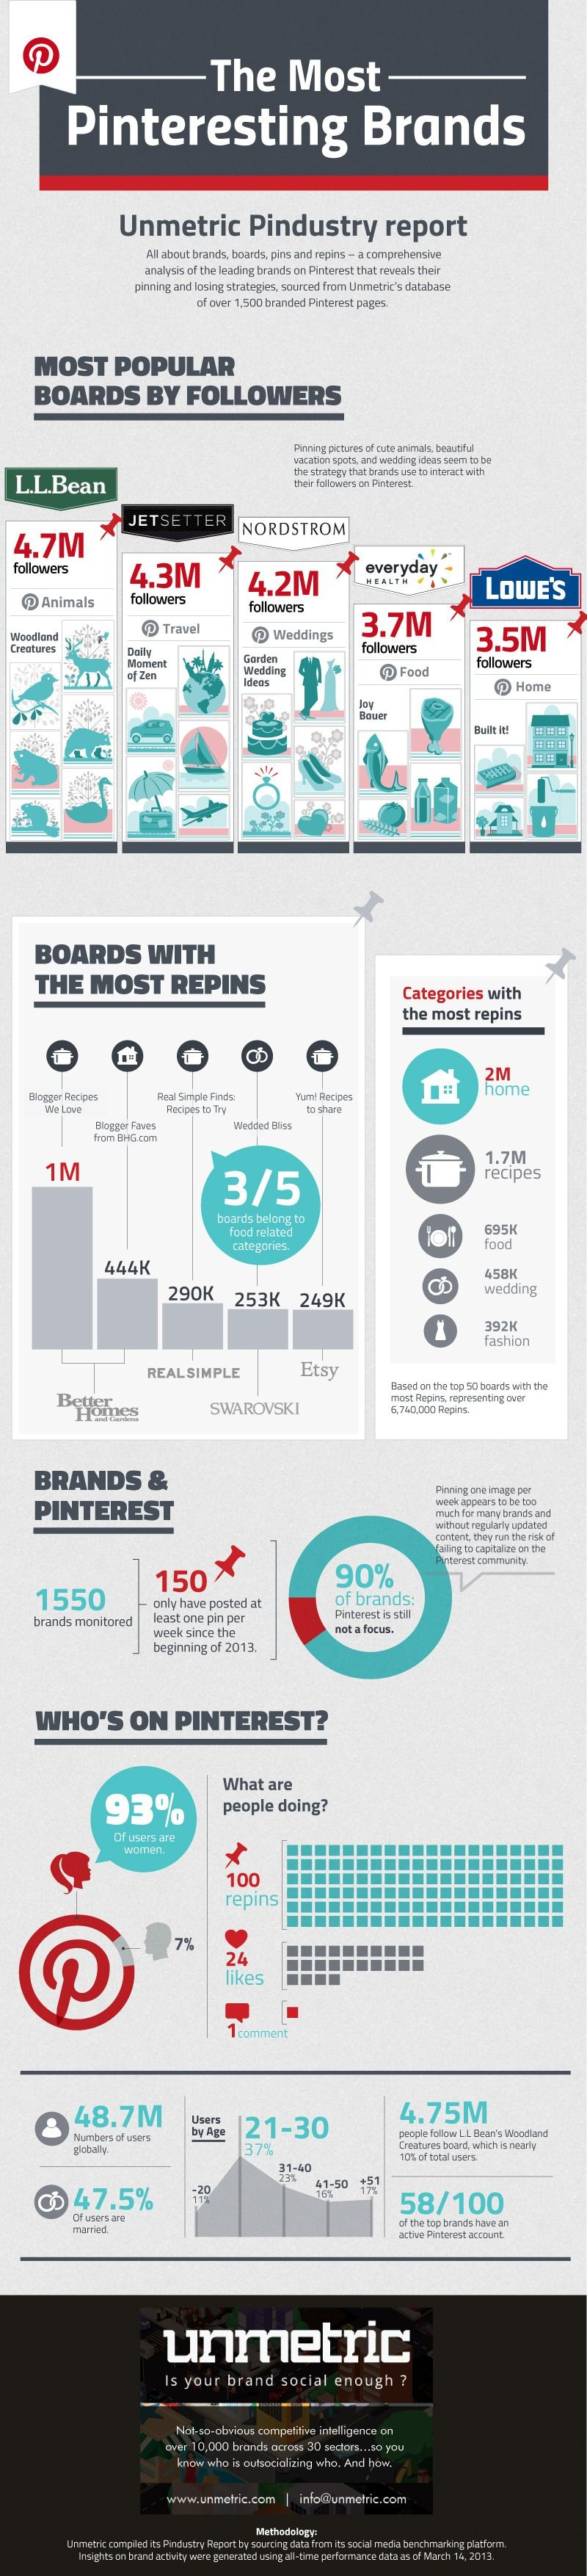 : Small Business Blog for Entrpreneurs : Most Popular Pinterest Categories and Brands infographic.…